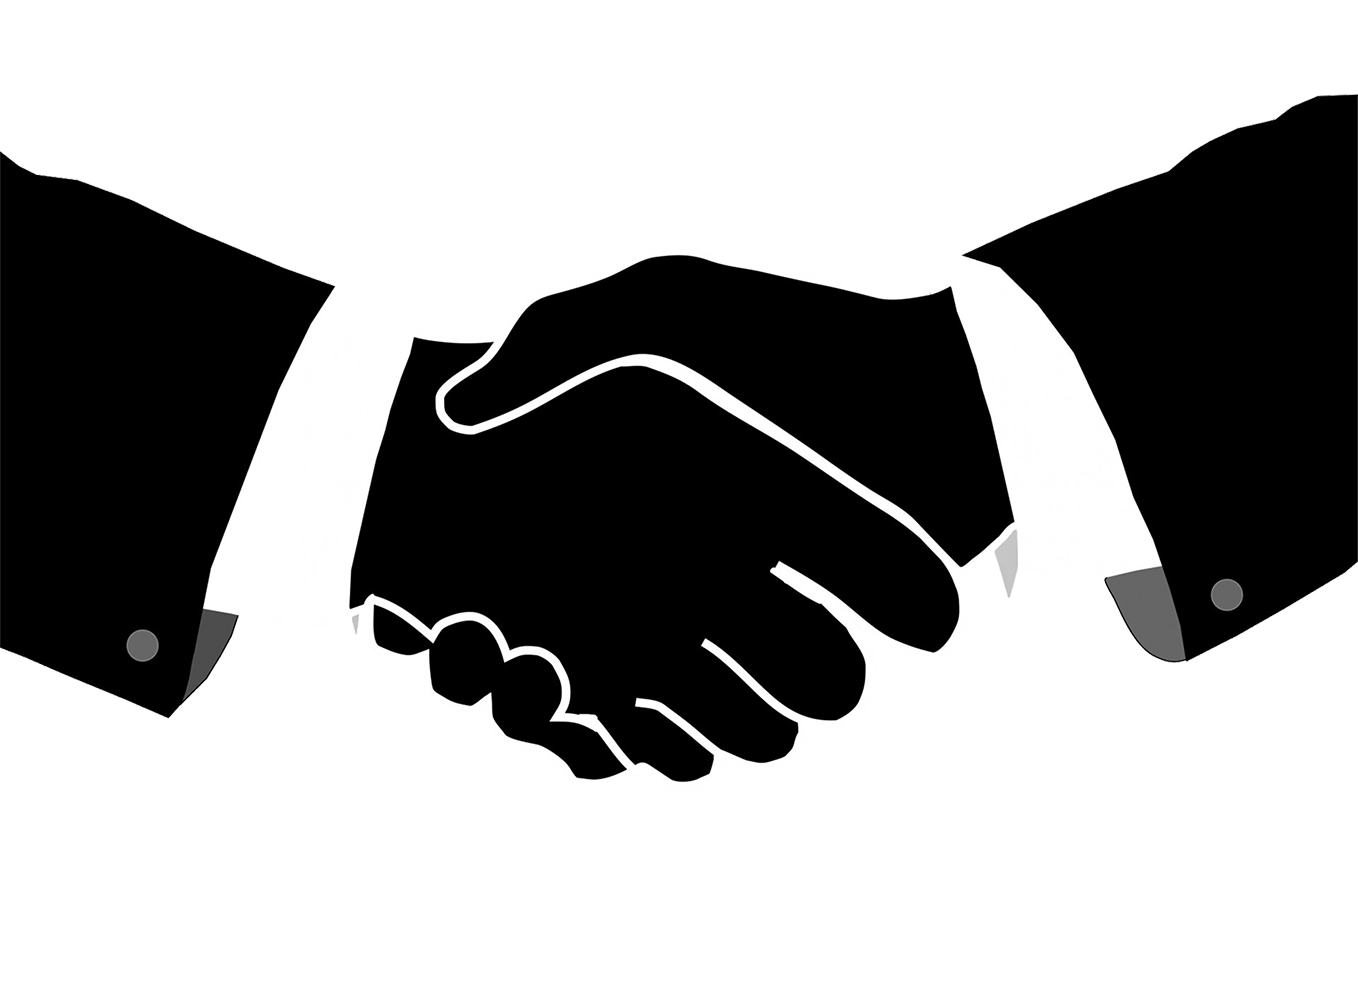 Silhouette logos y marcas. Professional clipart handshake